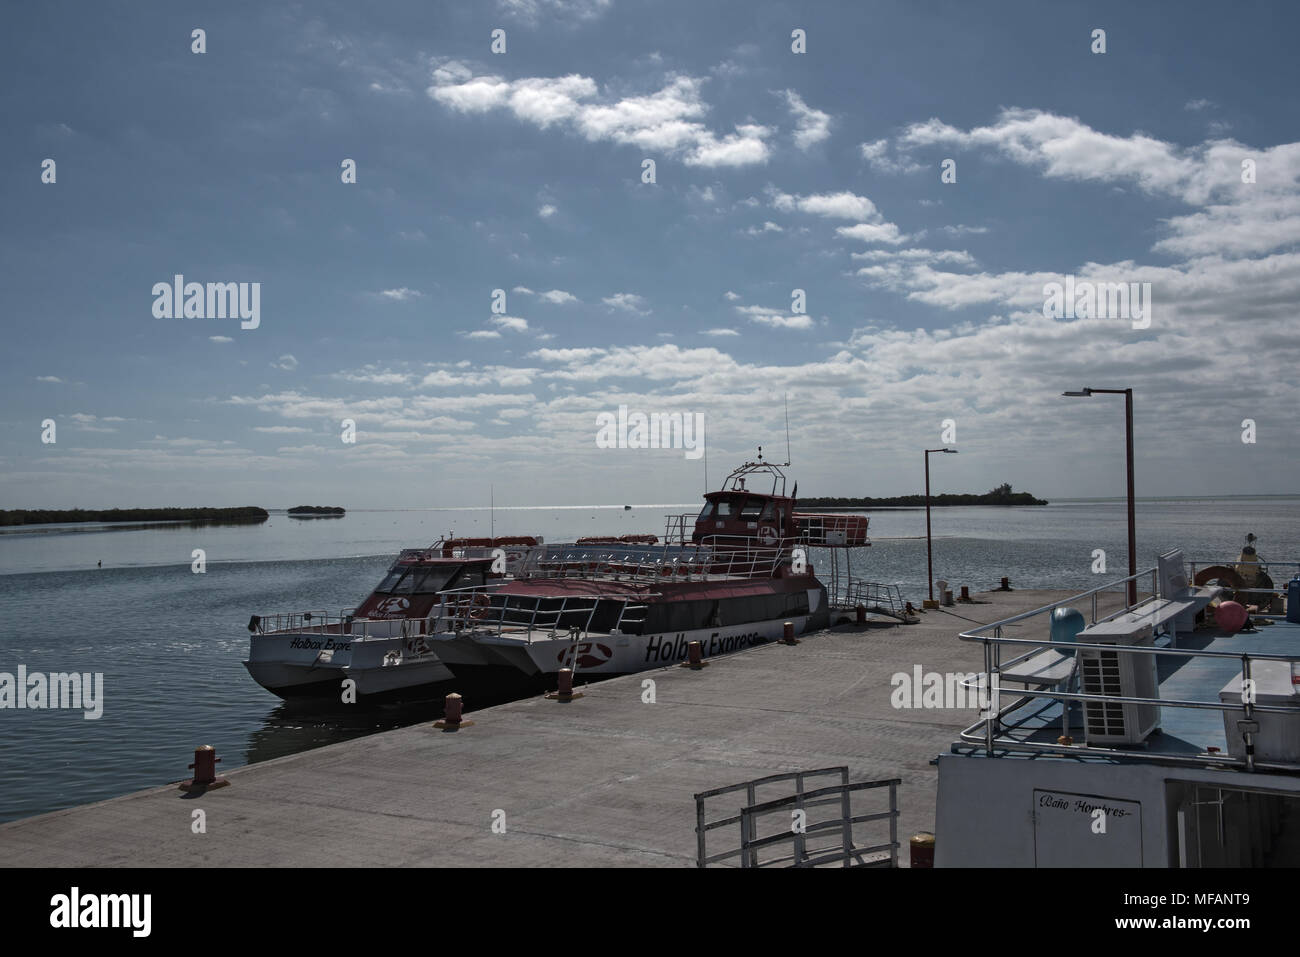 Three ferries in the harbor of Holbox, Quintana Roo, Mexico - Stock Image